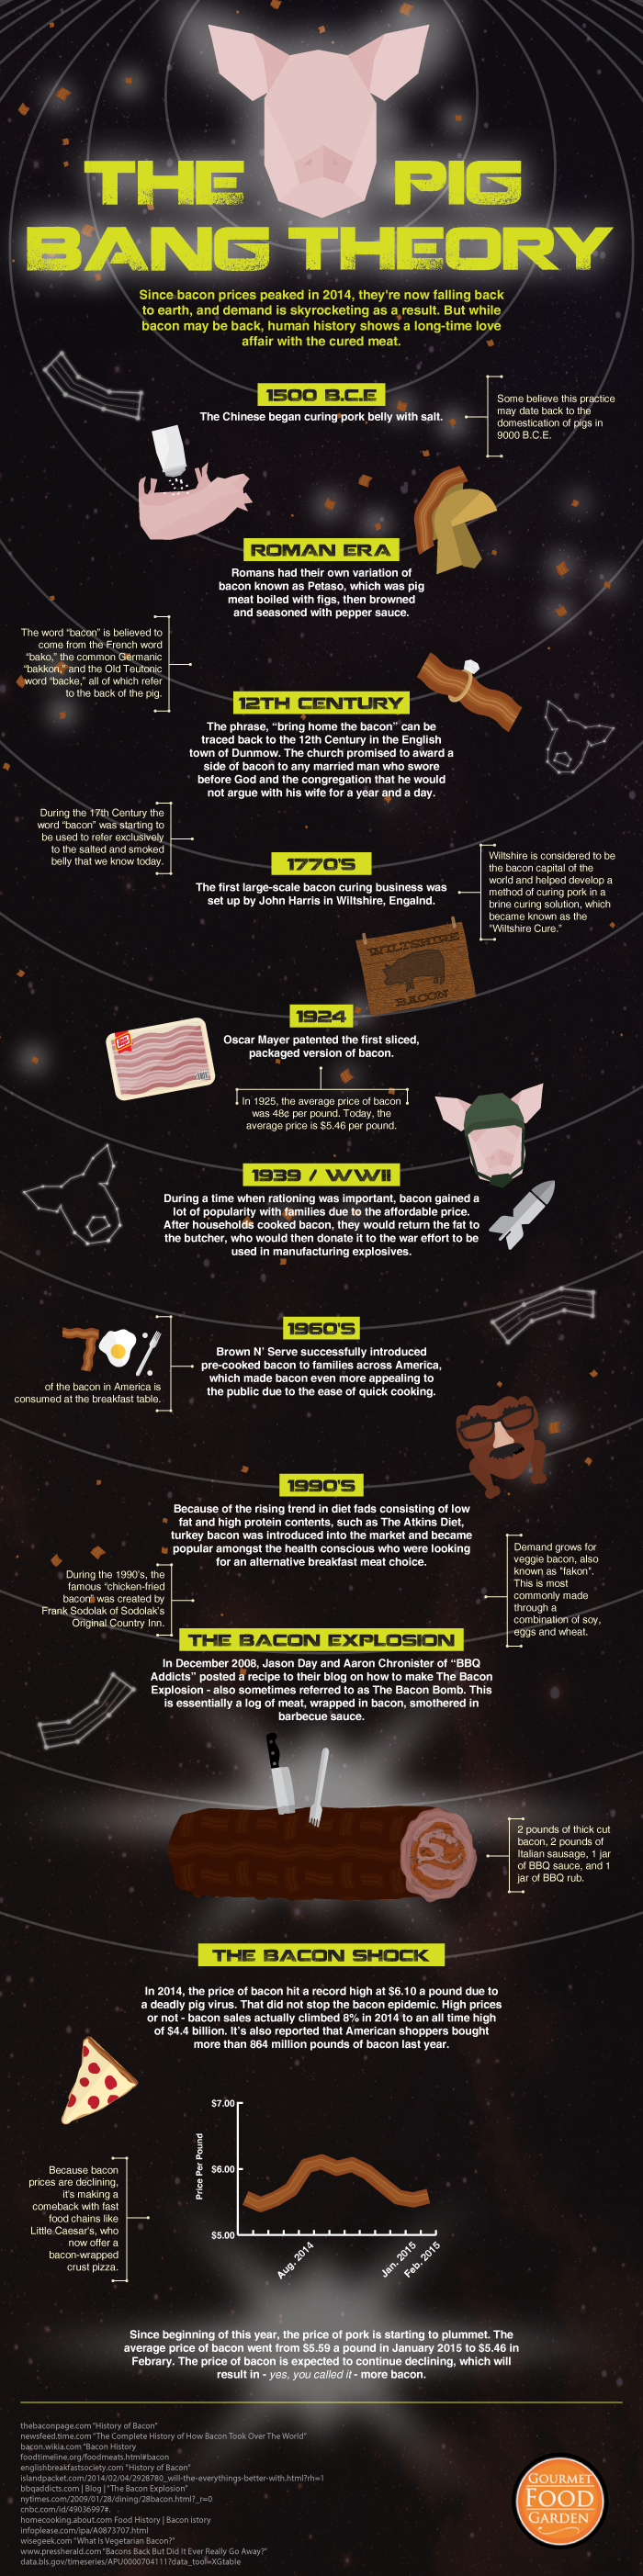 Bacon, Bombs, and Bacon Bombs: An Illustrated History